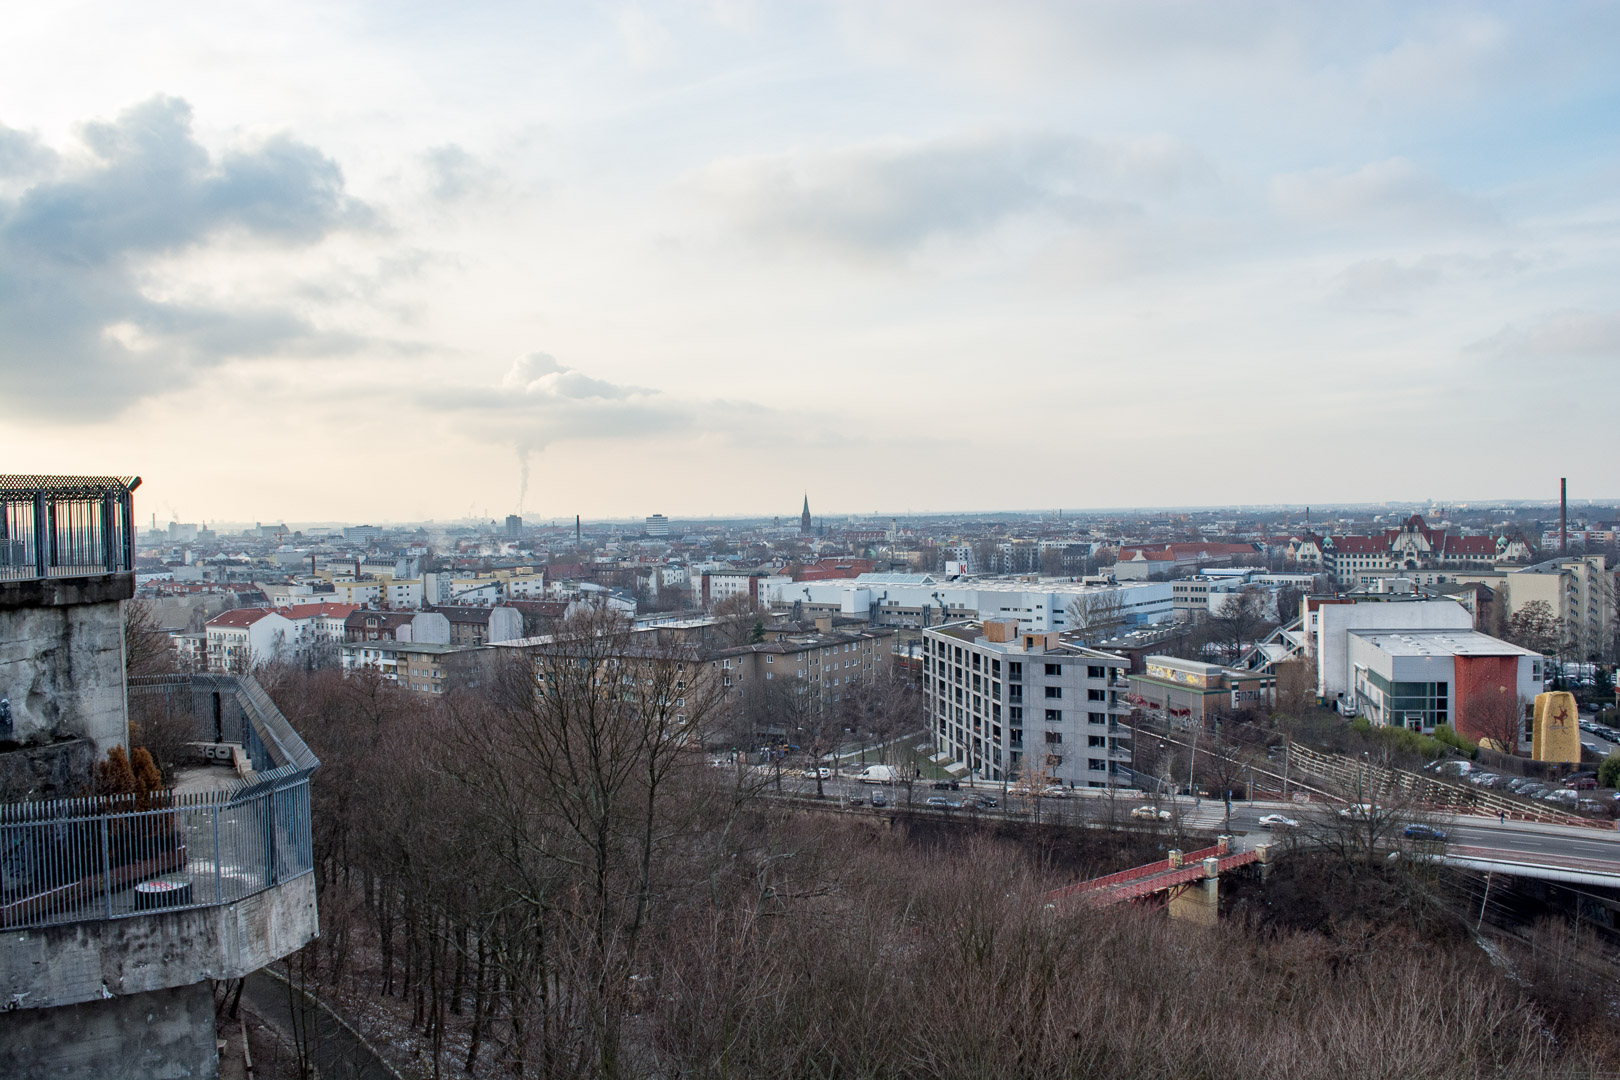 View of Berlin from the top